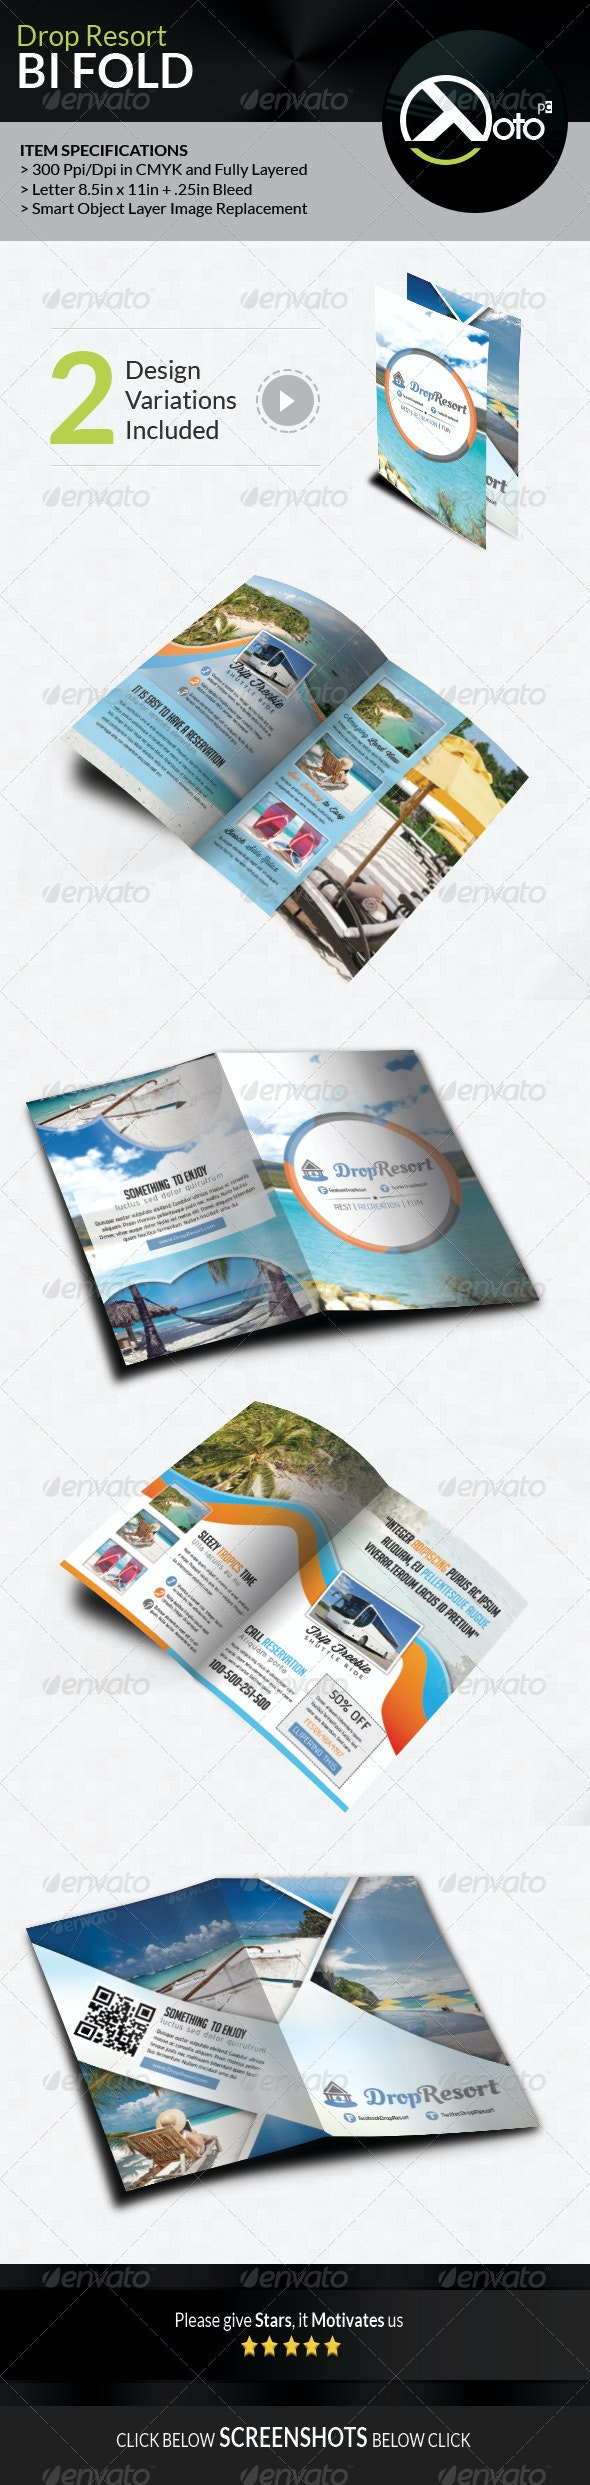 Drop Beach Resort Vacation Trip Bifold by totopc | GraphicRiver